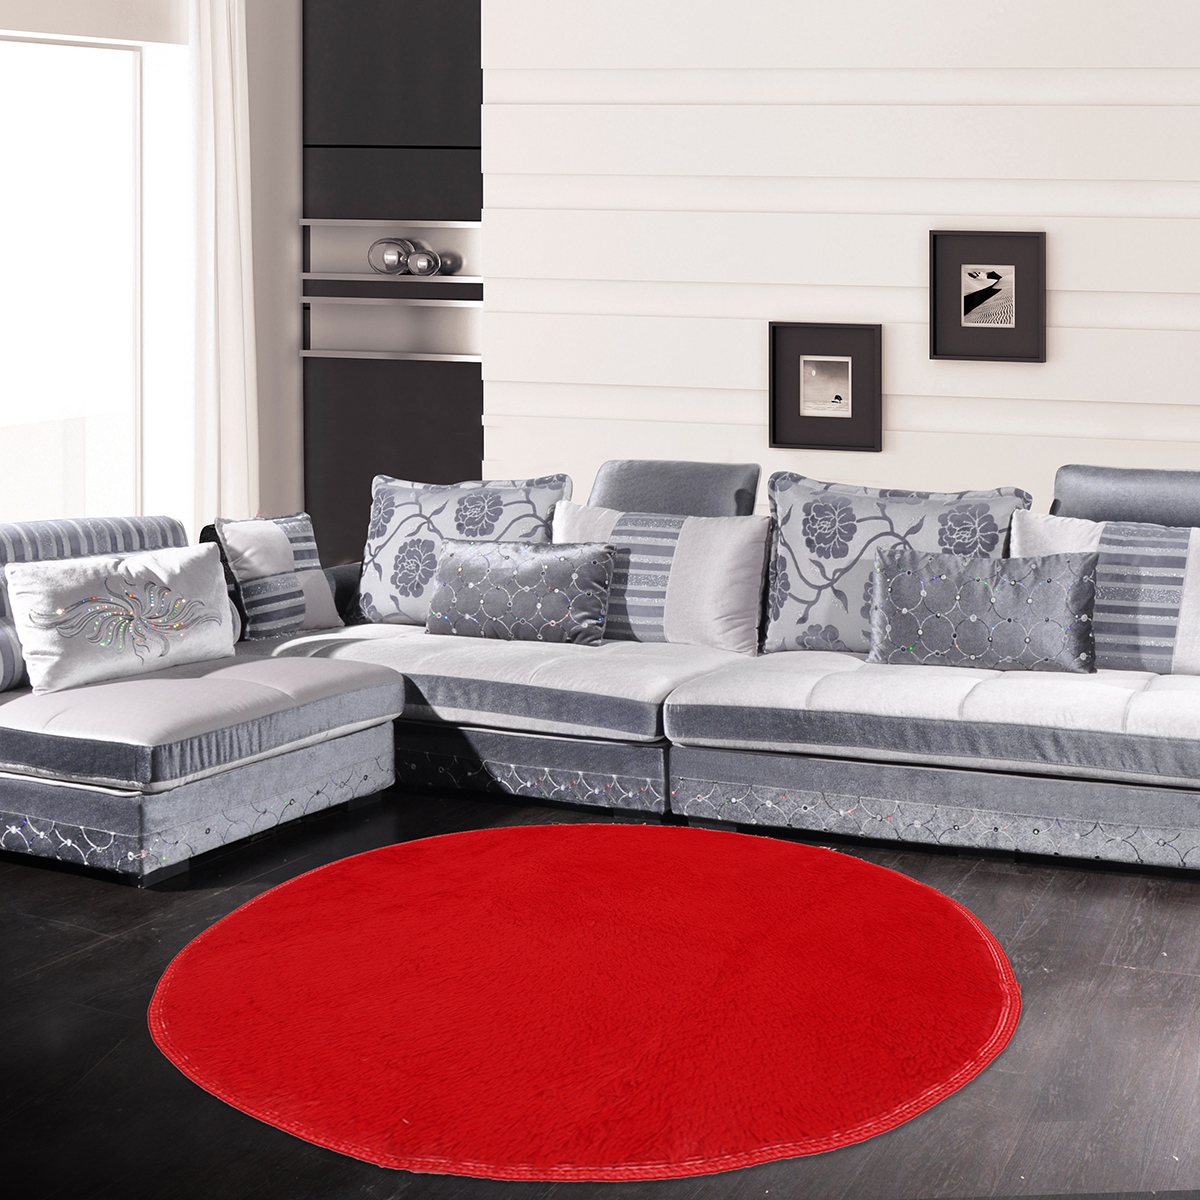 Round Area Rugs For Bedroom Anti Slip Fluffy Shaggy Living Room Carpets Home Decor Rugs Red